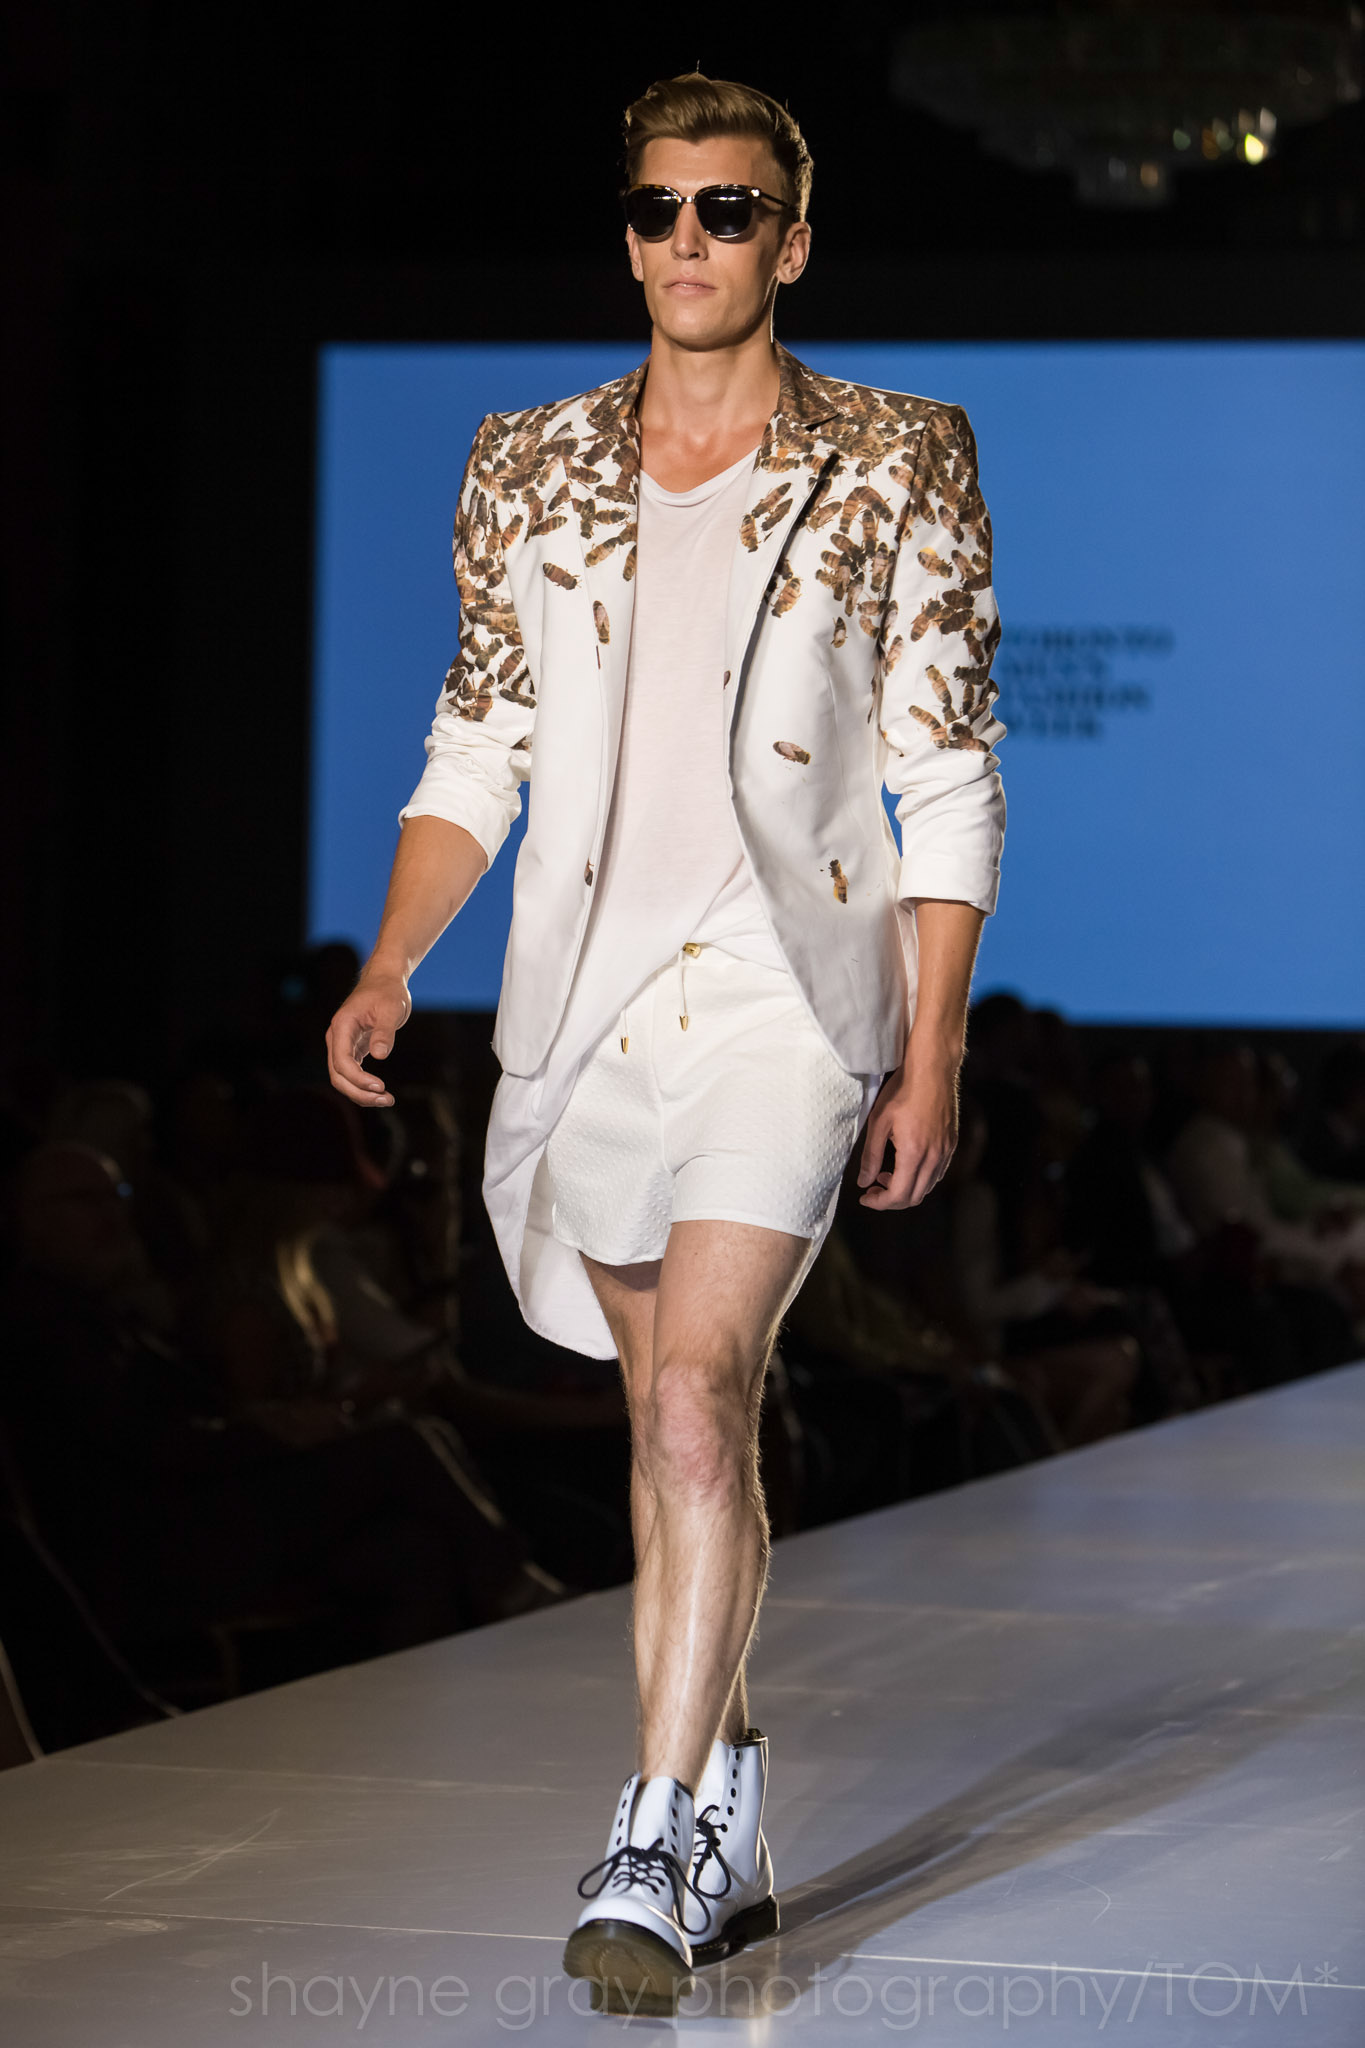 Shayne-Gray-Toronto-men's-fashion_week-TOM-worth-by-david-c-wigley-6233.jpg